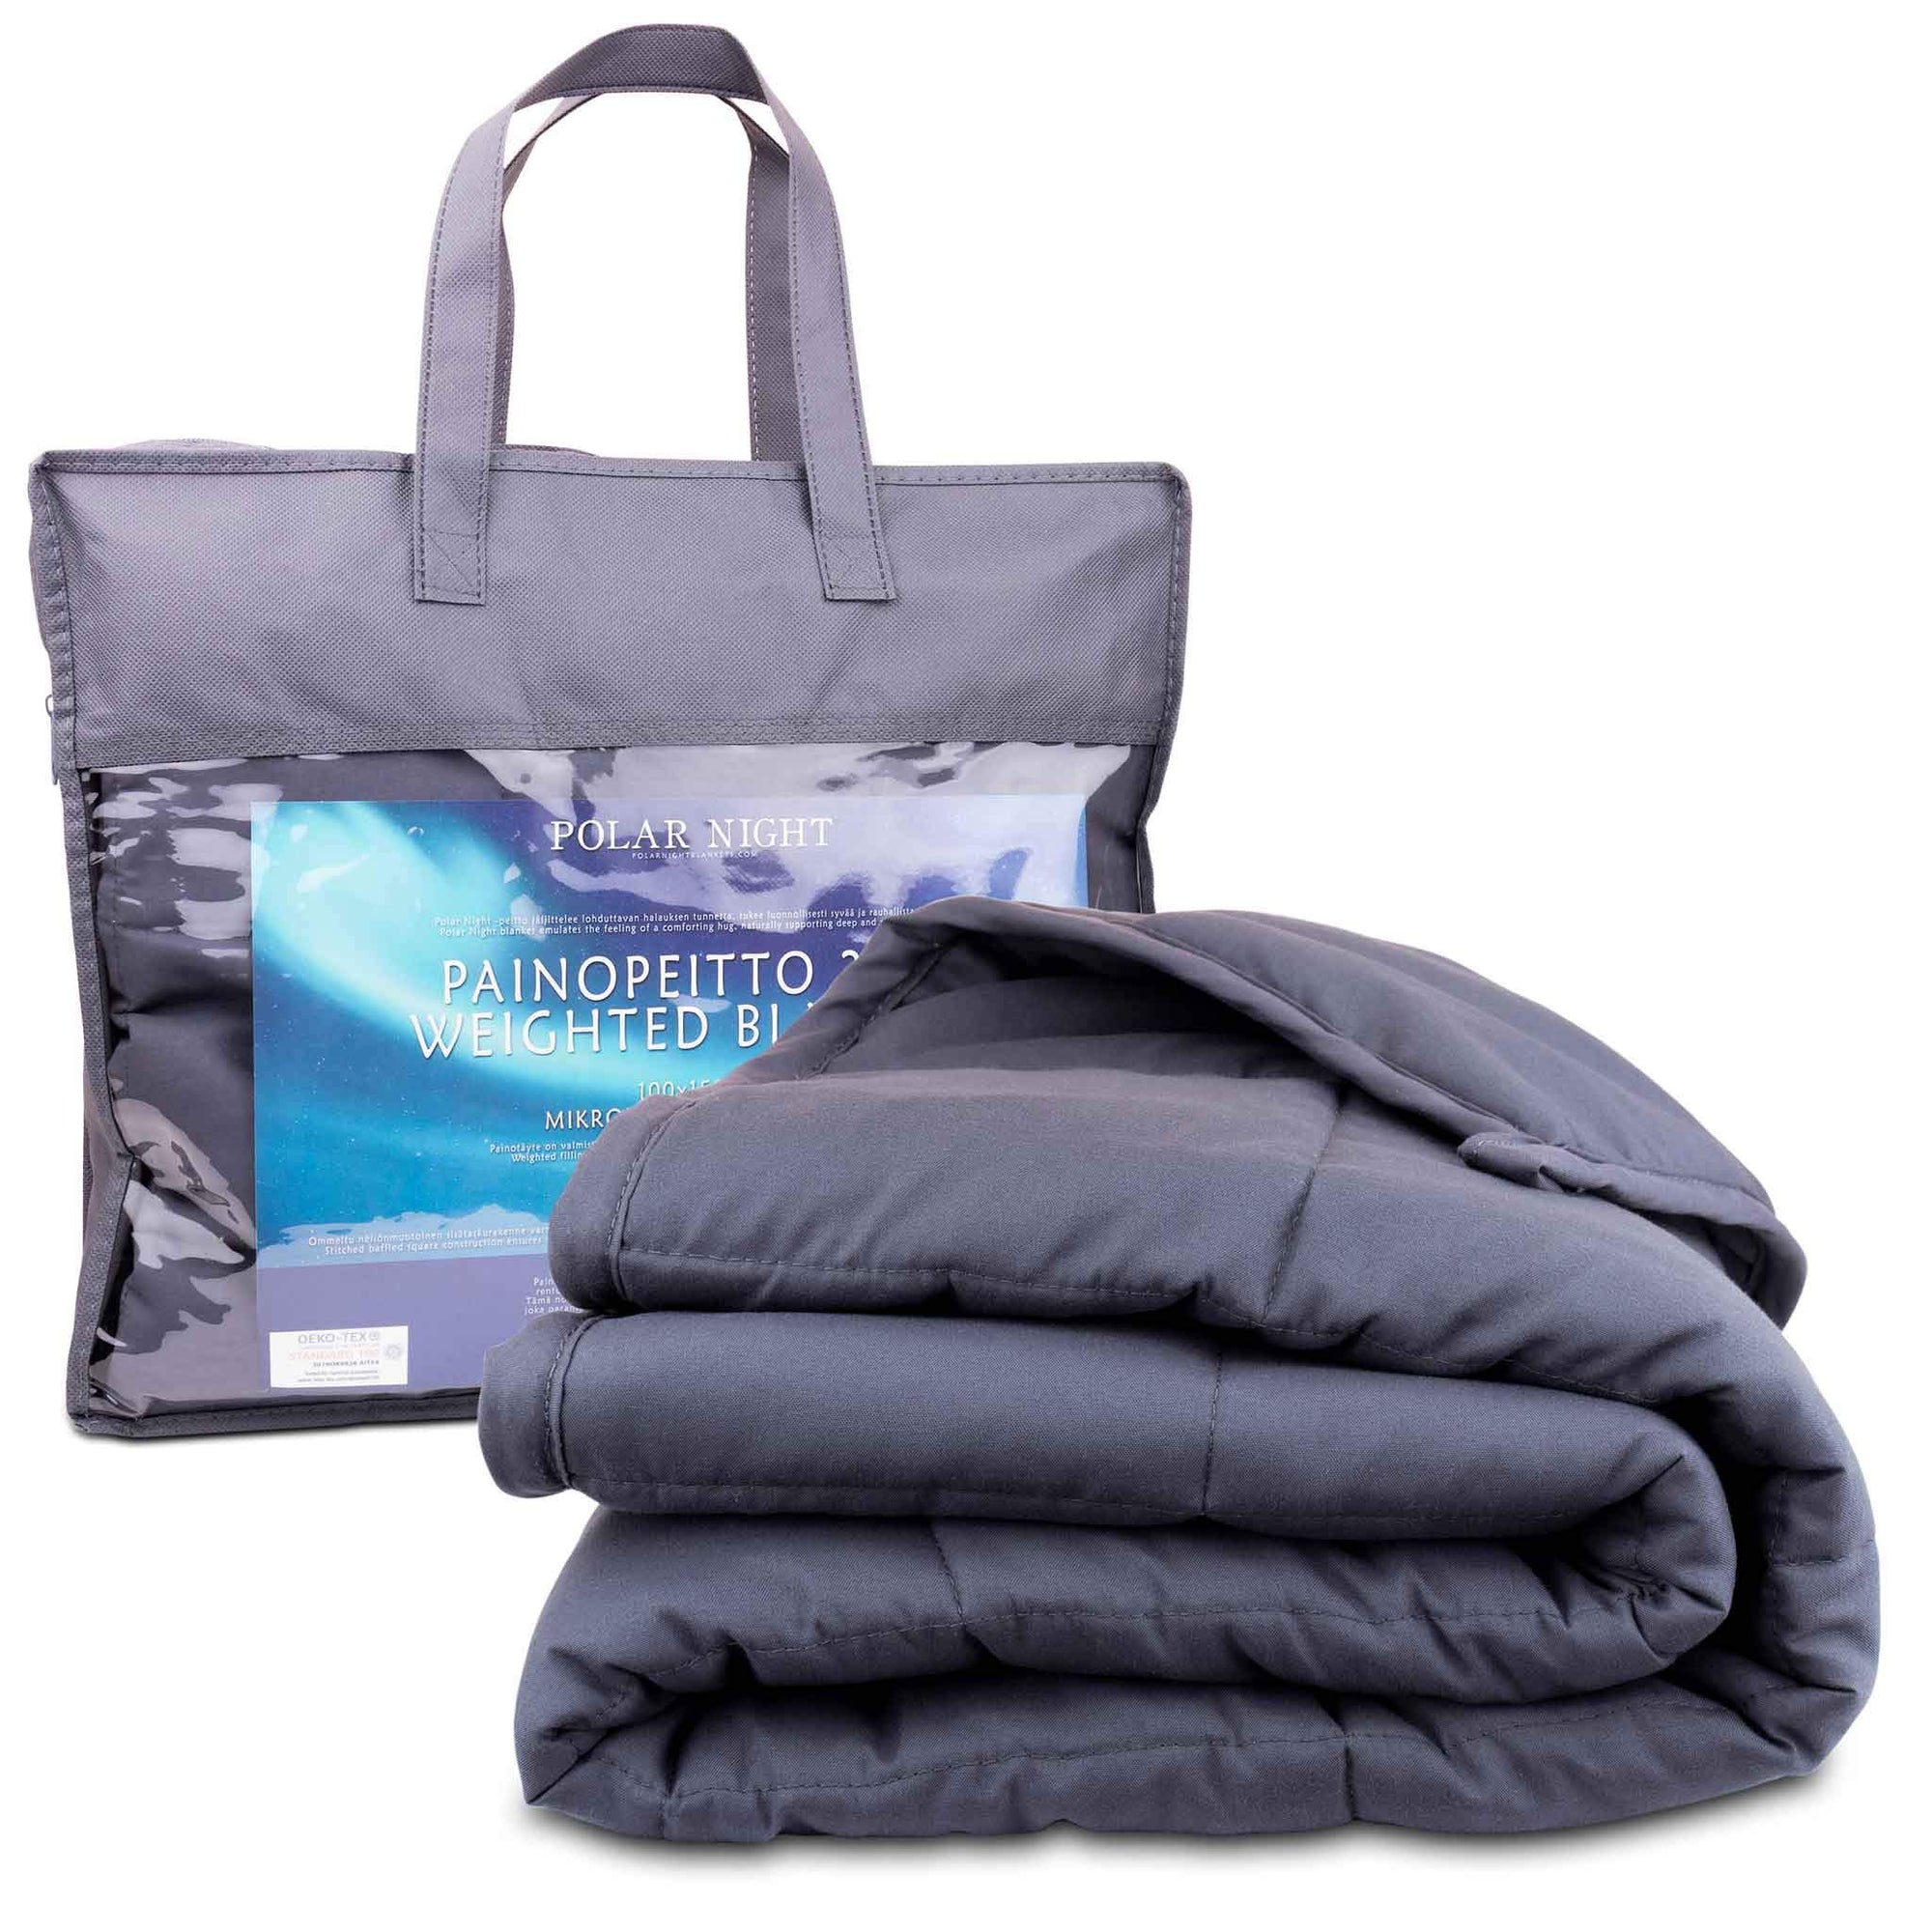 Polar Night Lasten painopeitto 3-5kg, 100x150cm